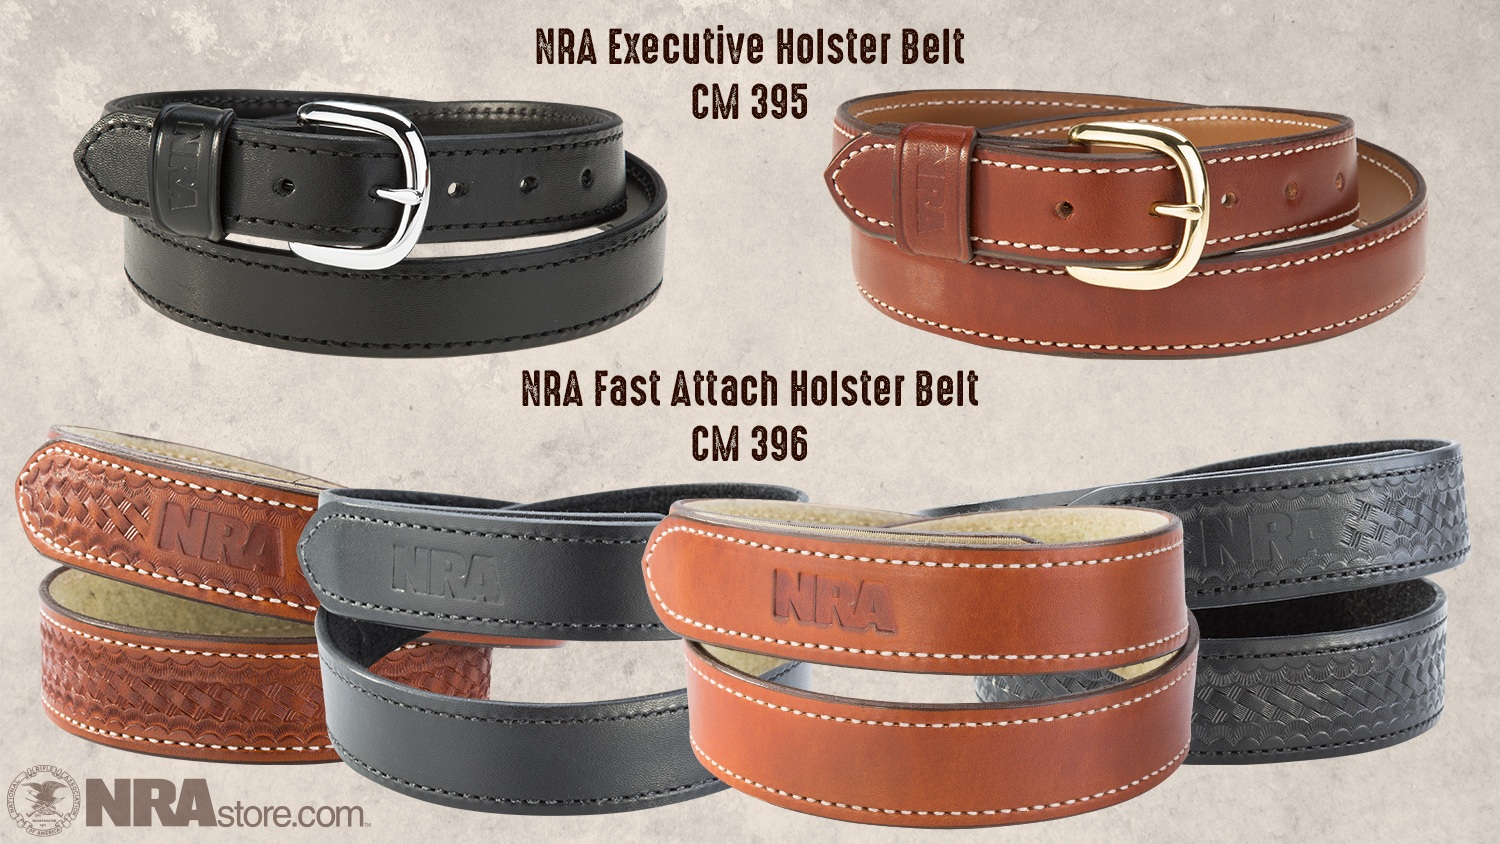 NRAStore Holster Belts